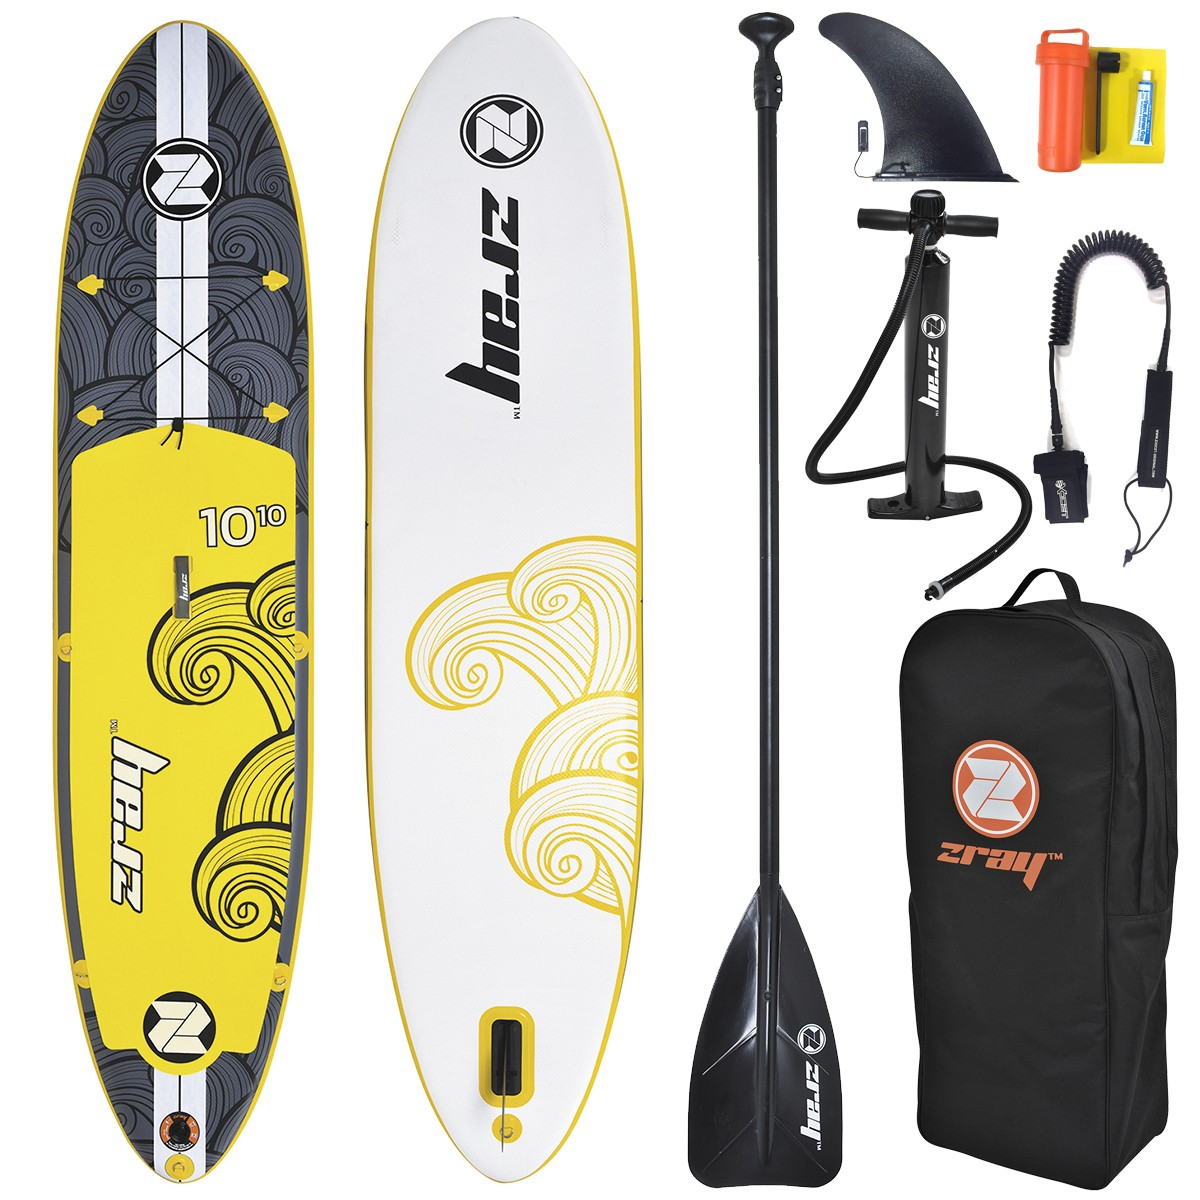 loisirs 3000 achat de kayak vente de planche a voile planche de surf et bodyboard. Black Bedroom Furniture Sets. Home Design Ideas